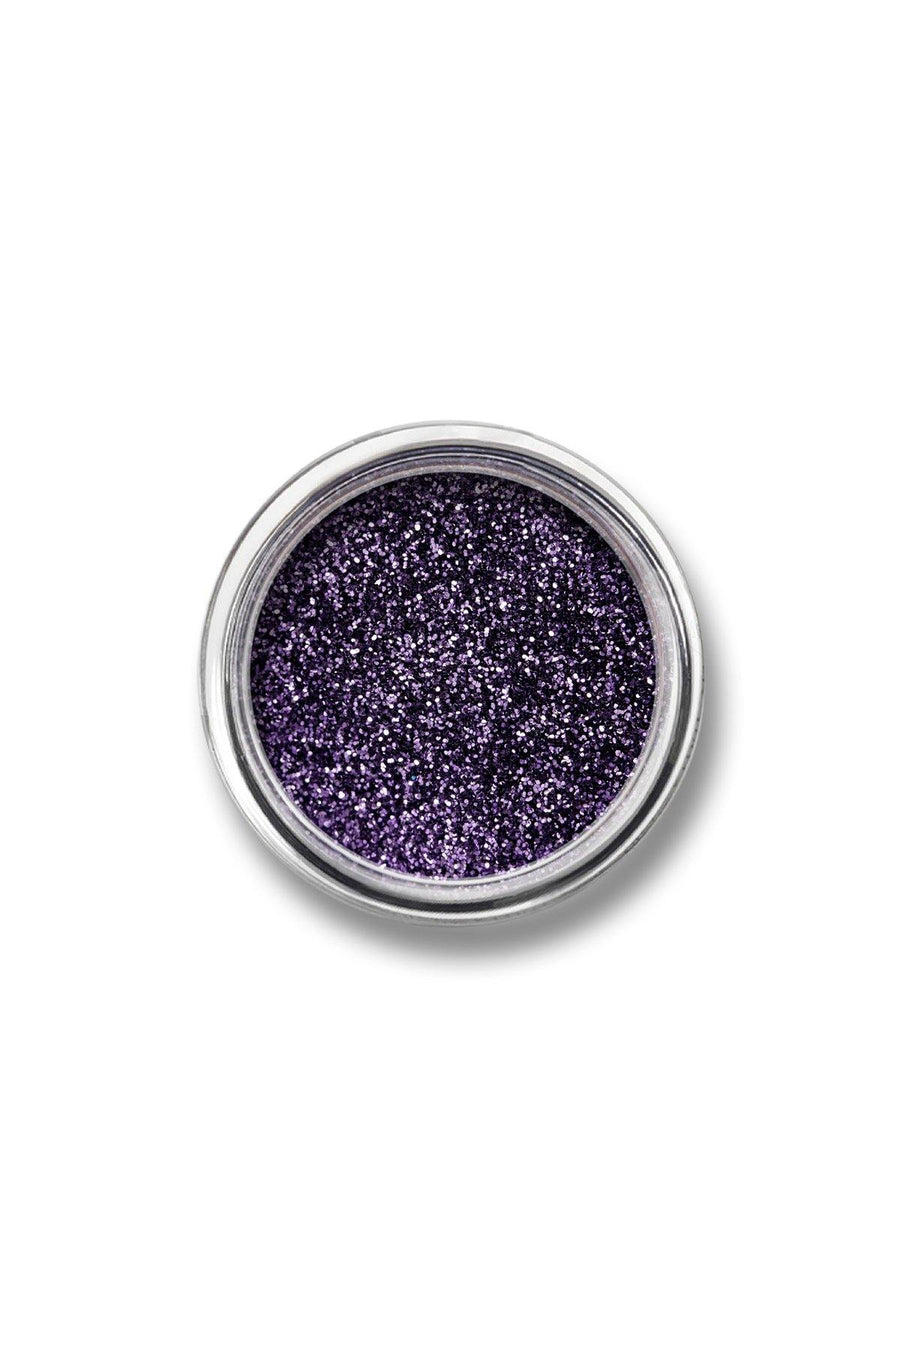 Glitter Powder #19 - Deep Purple - Blend Mineral Cosmetics